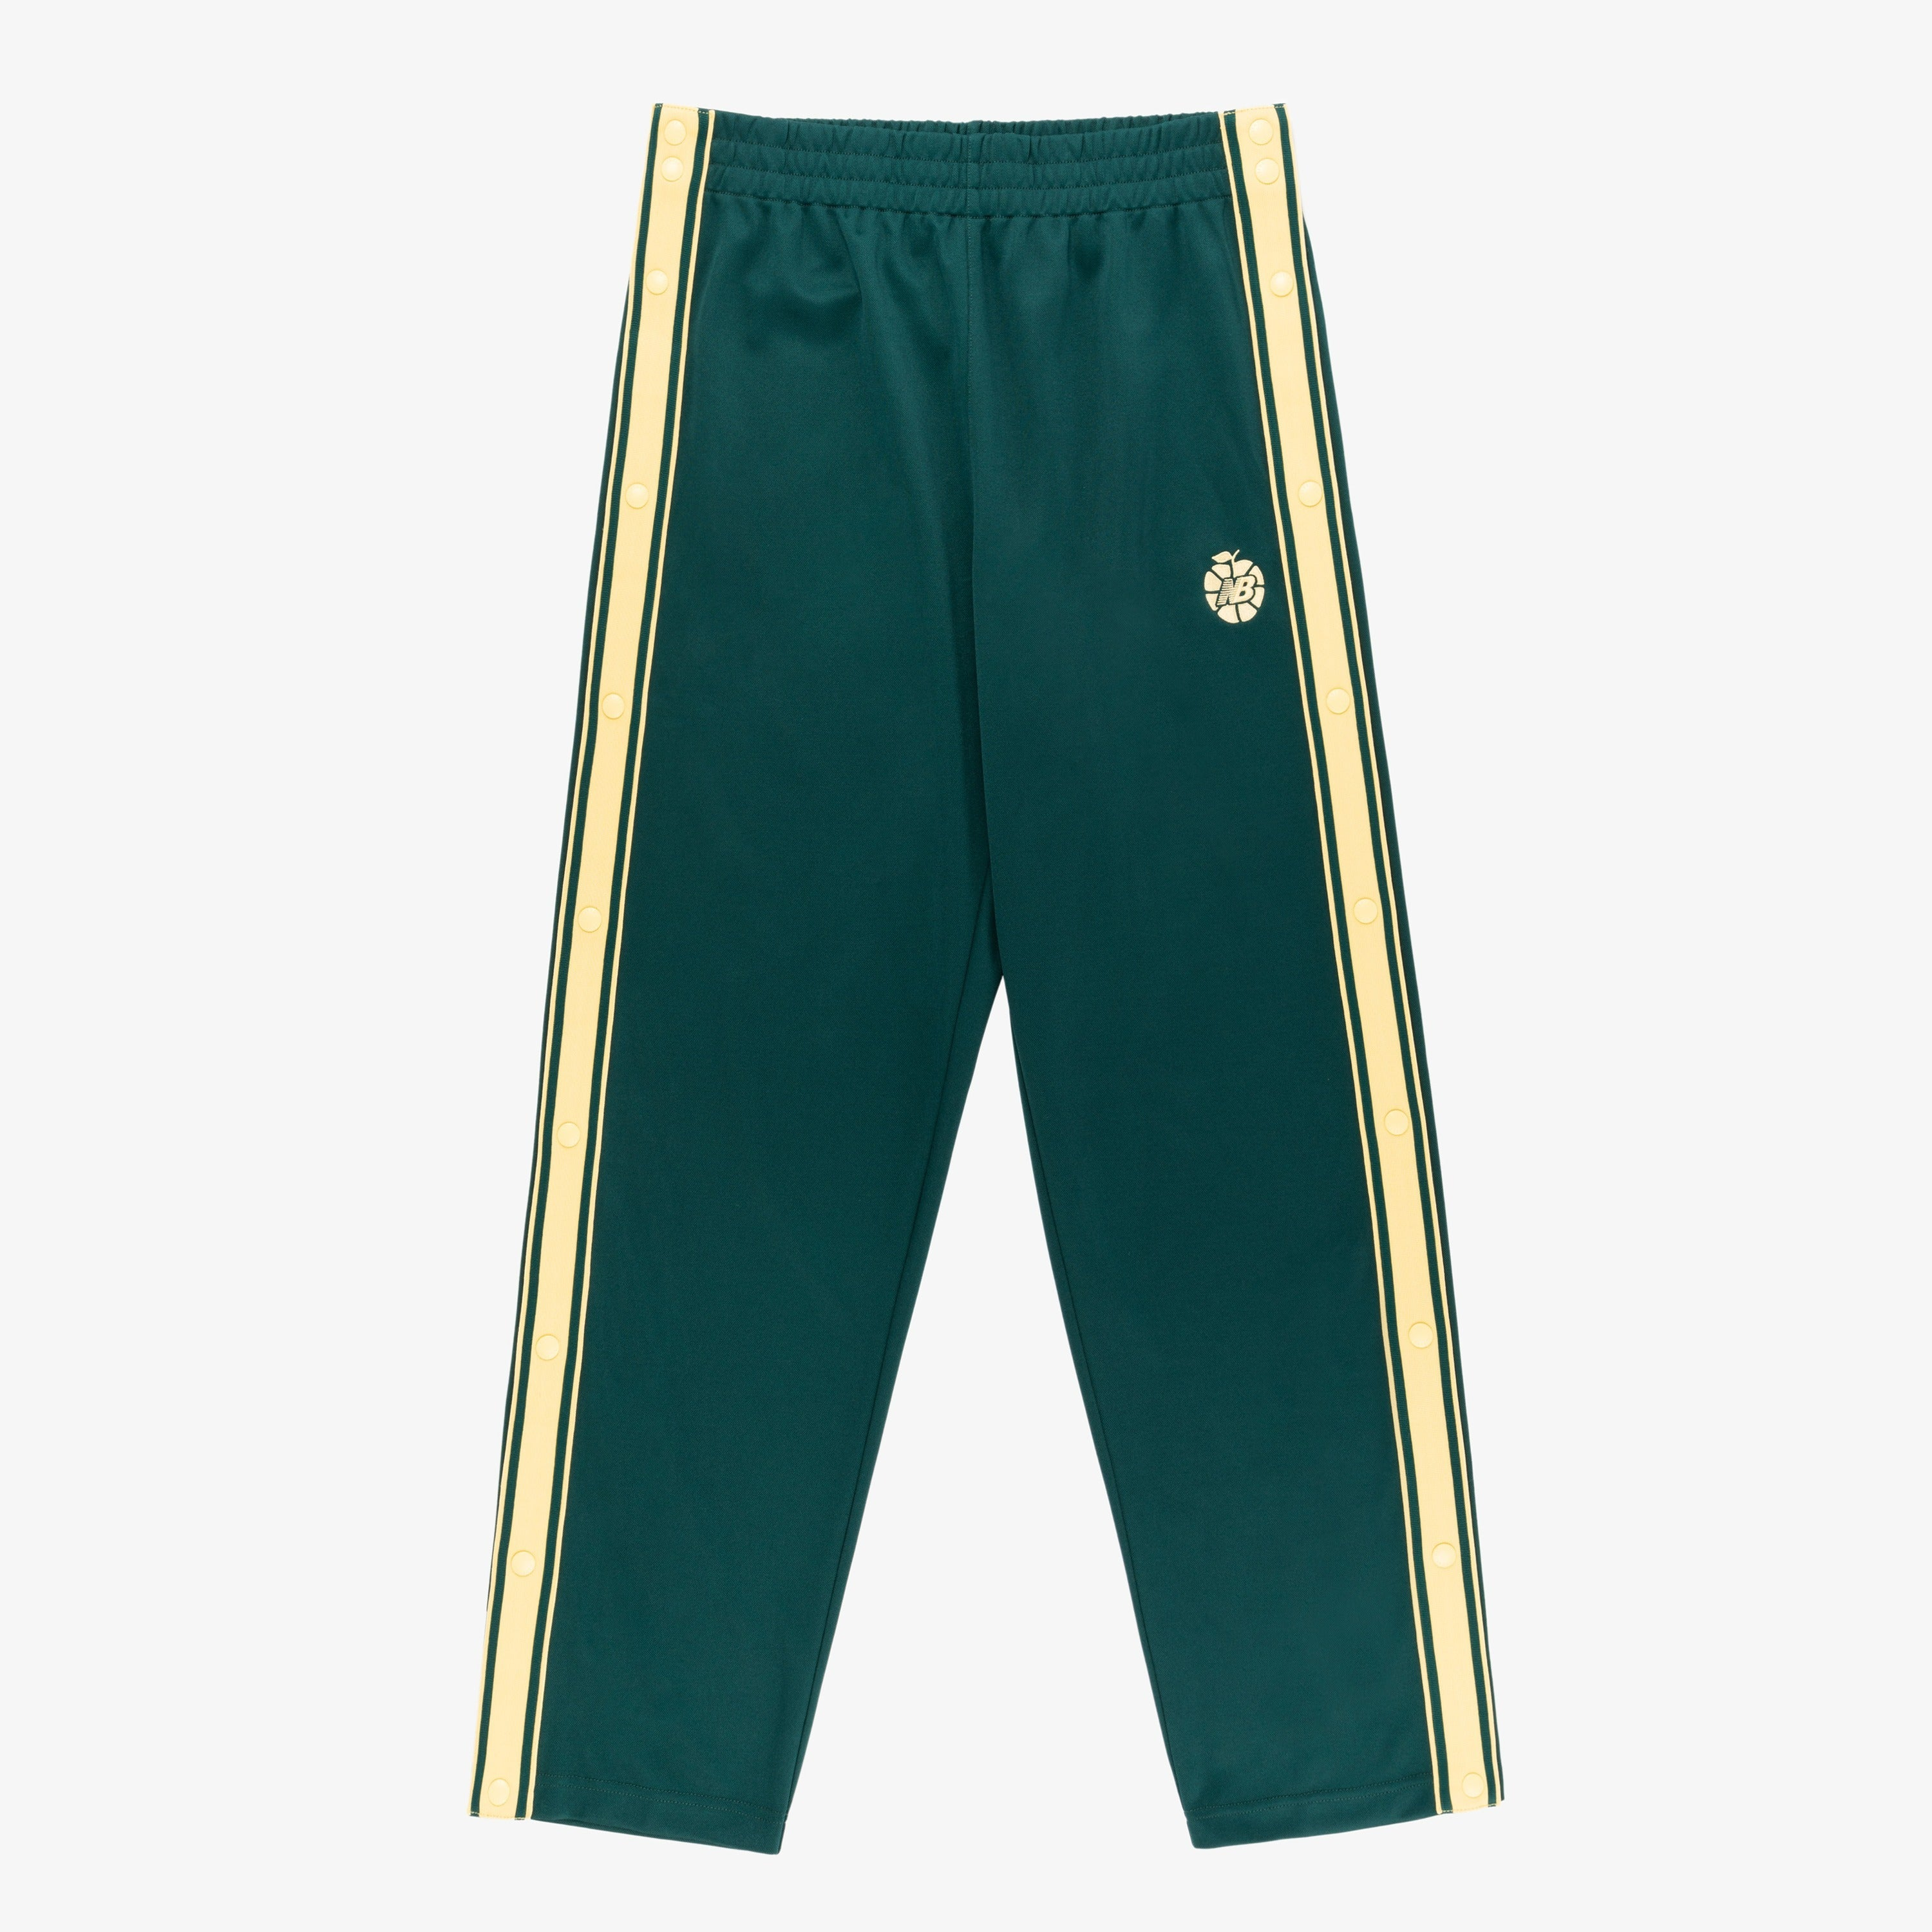 ALD / New Balance Warm Up Pant